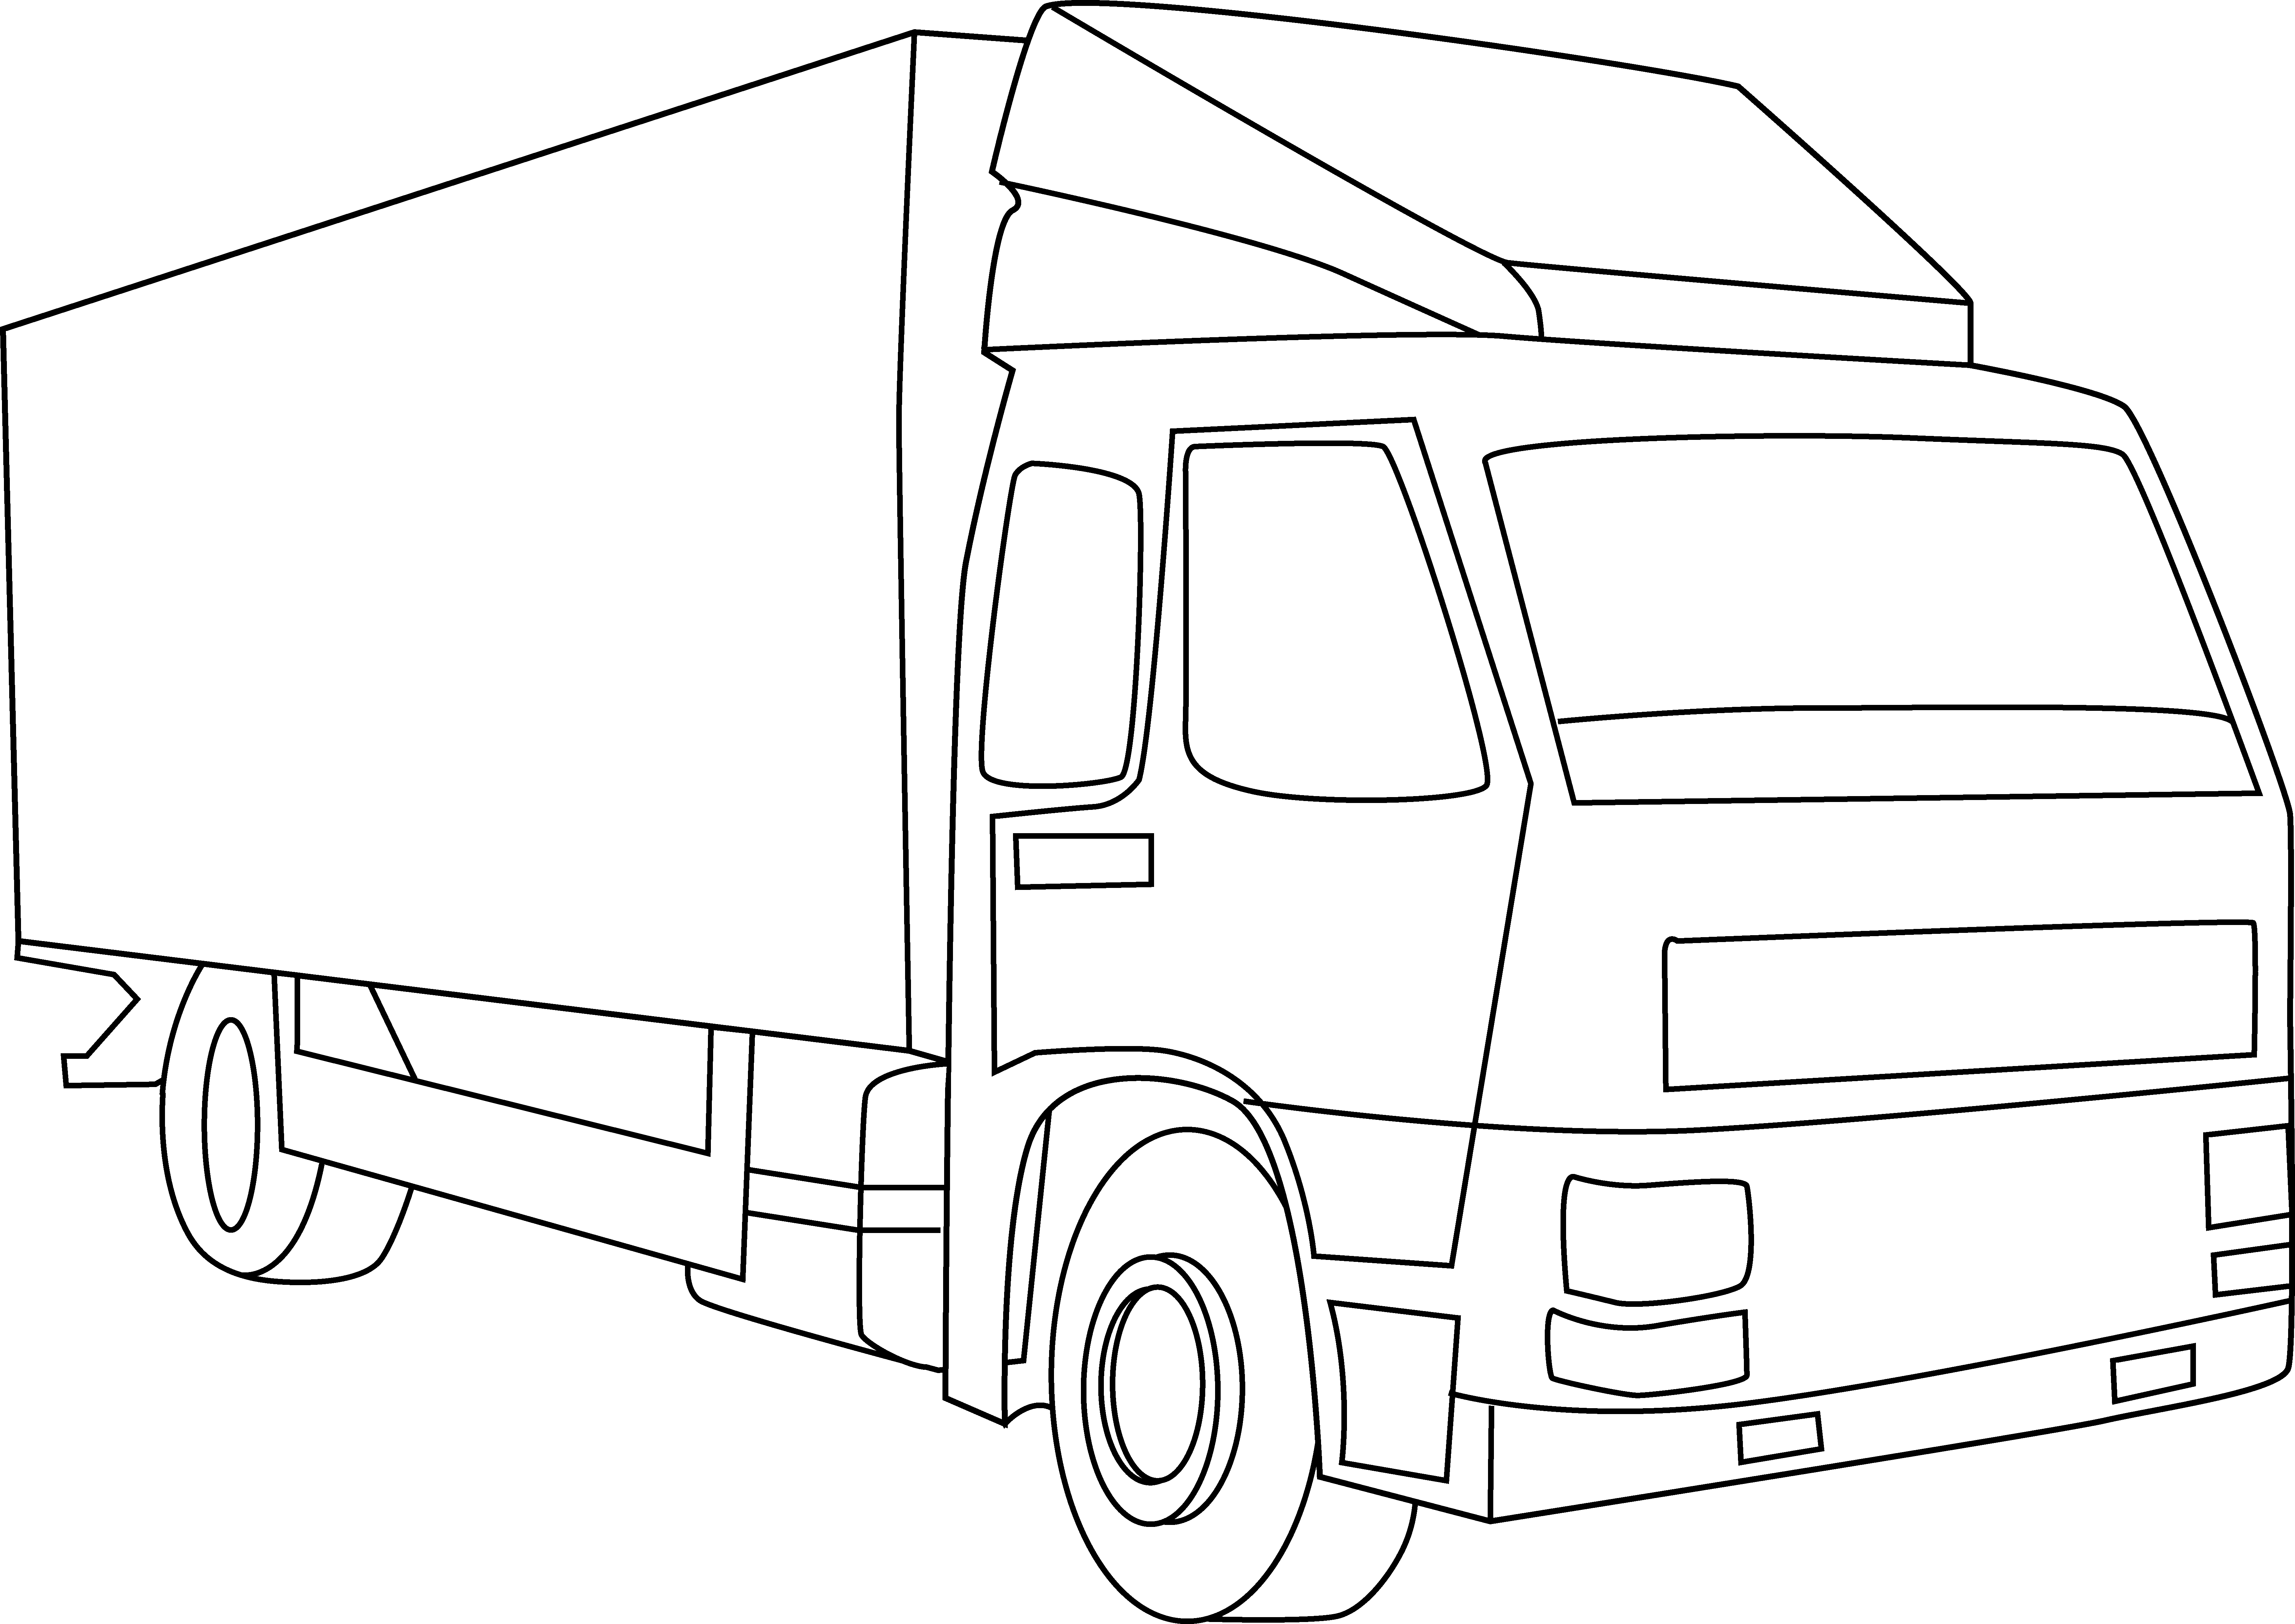 Free Truck Outline, Download Free Clip Art, Free Clip Art